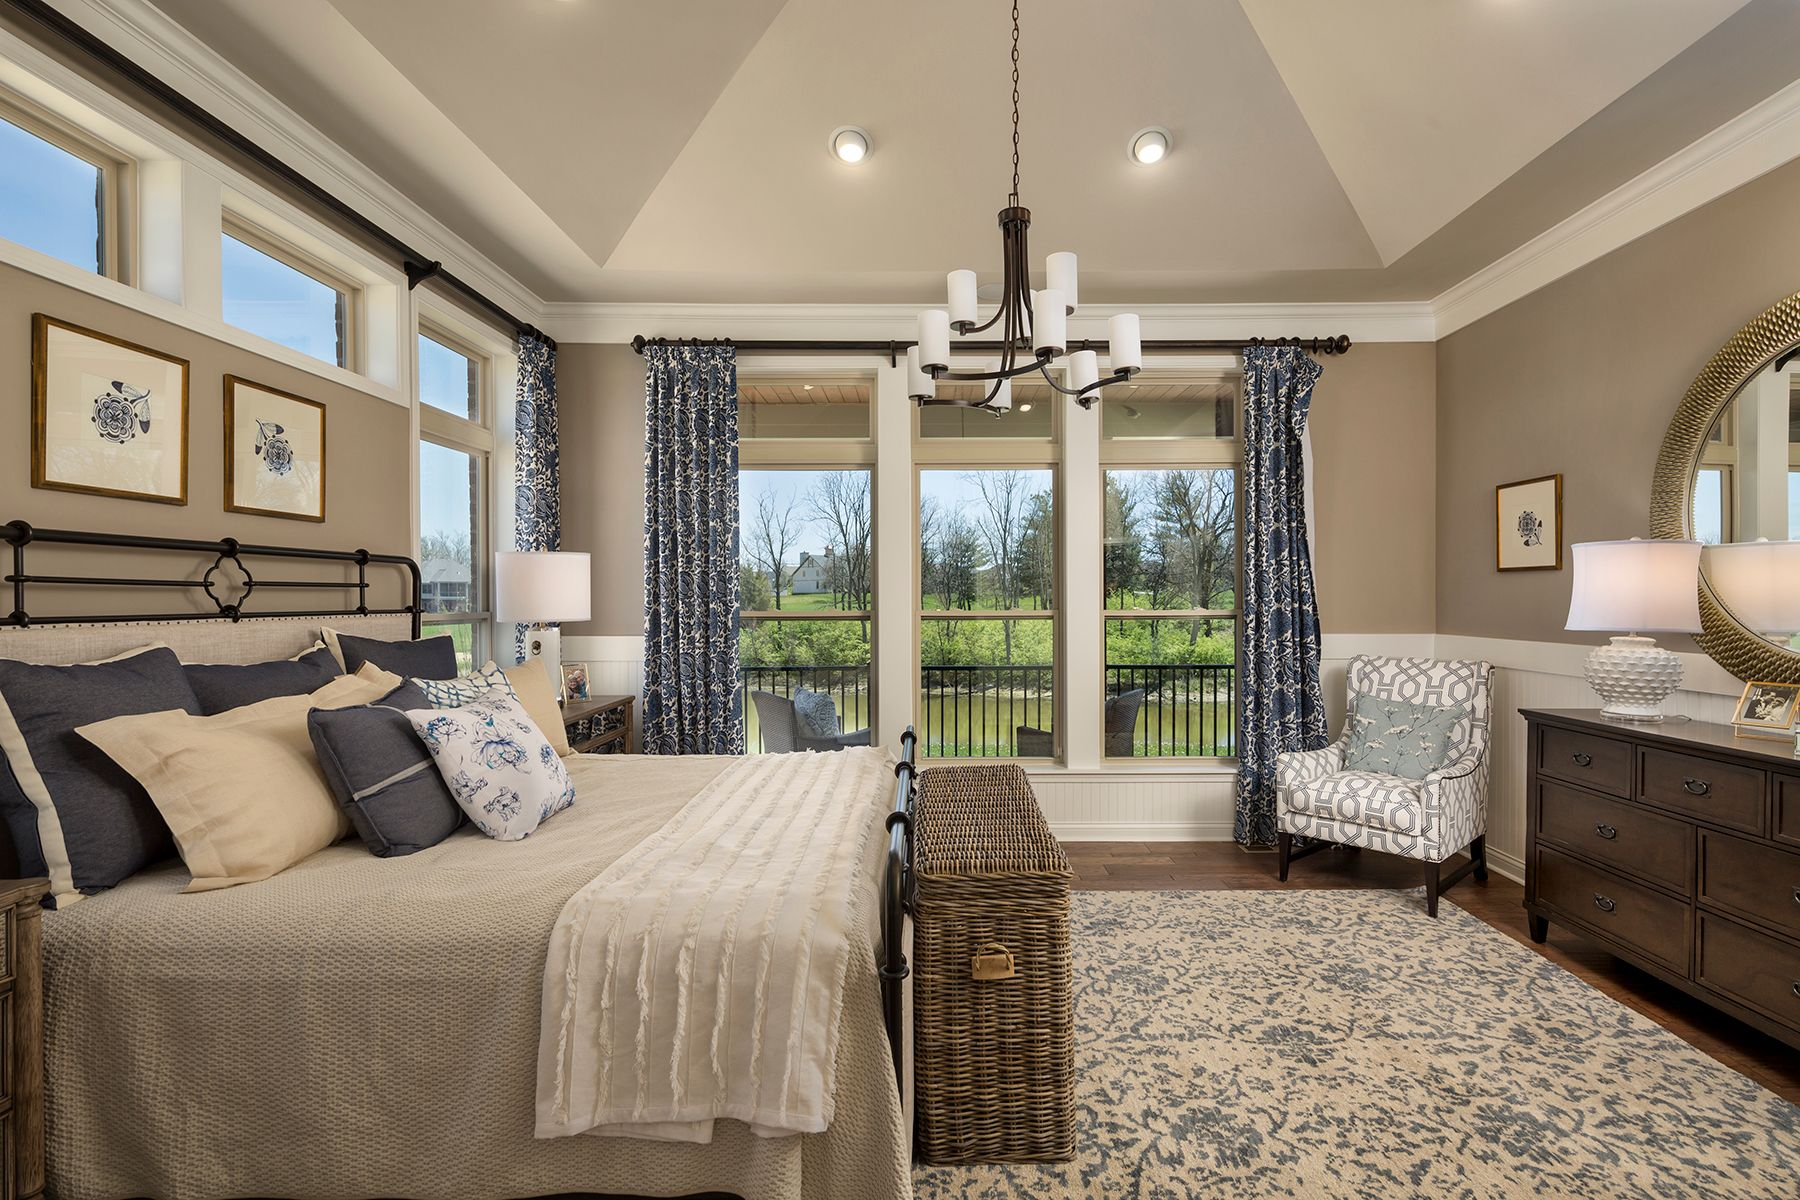 Bedroom featured in the Serenity By M/I Homes in Cincinnati, OH